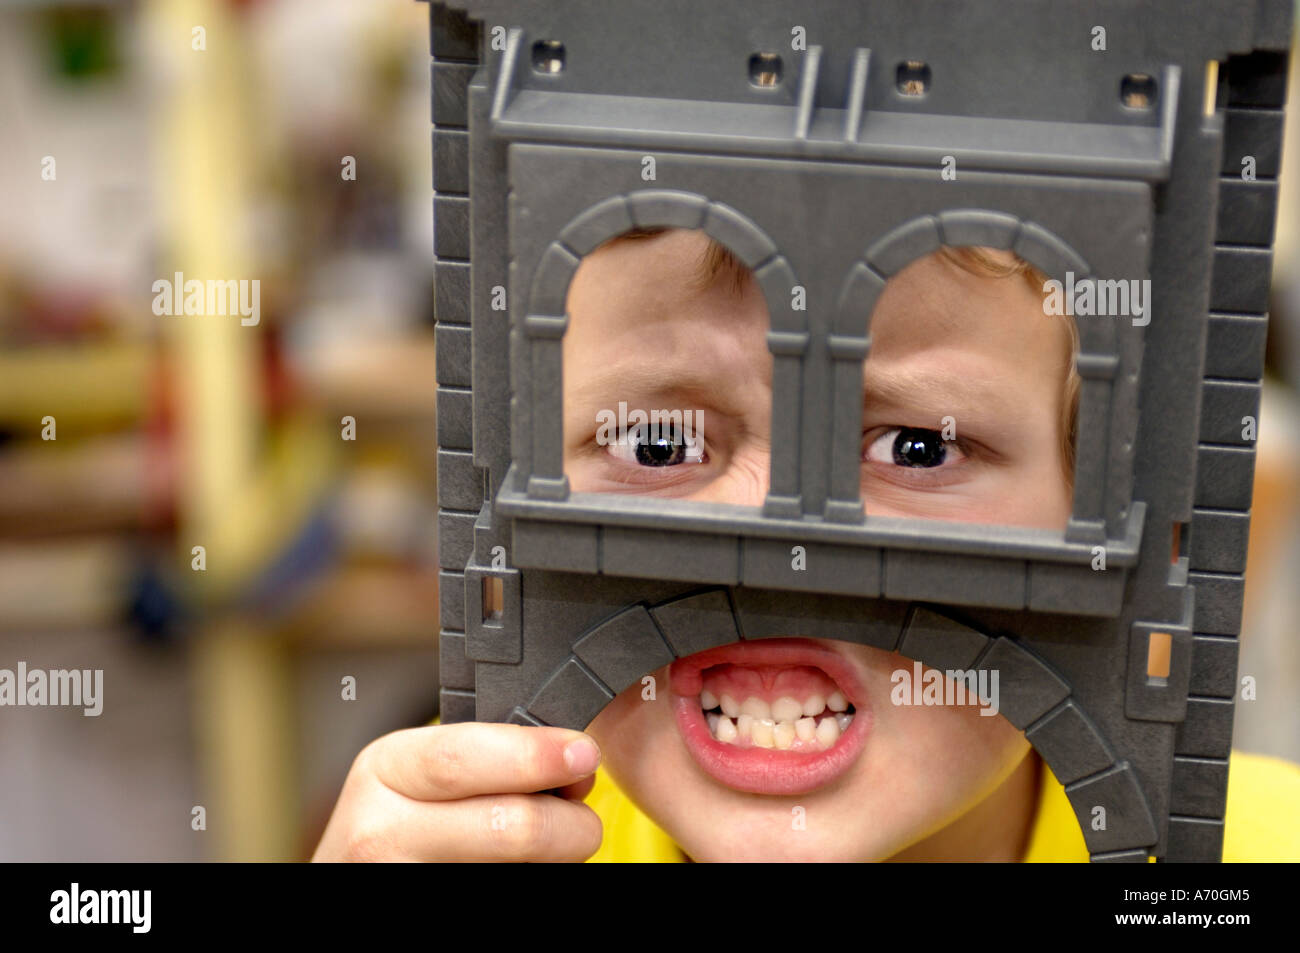 Young boy grimacing behind his toy knight's castle - Stock Image